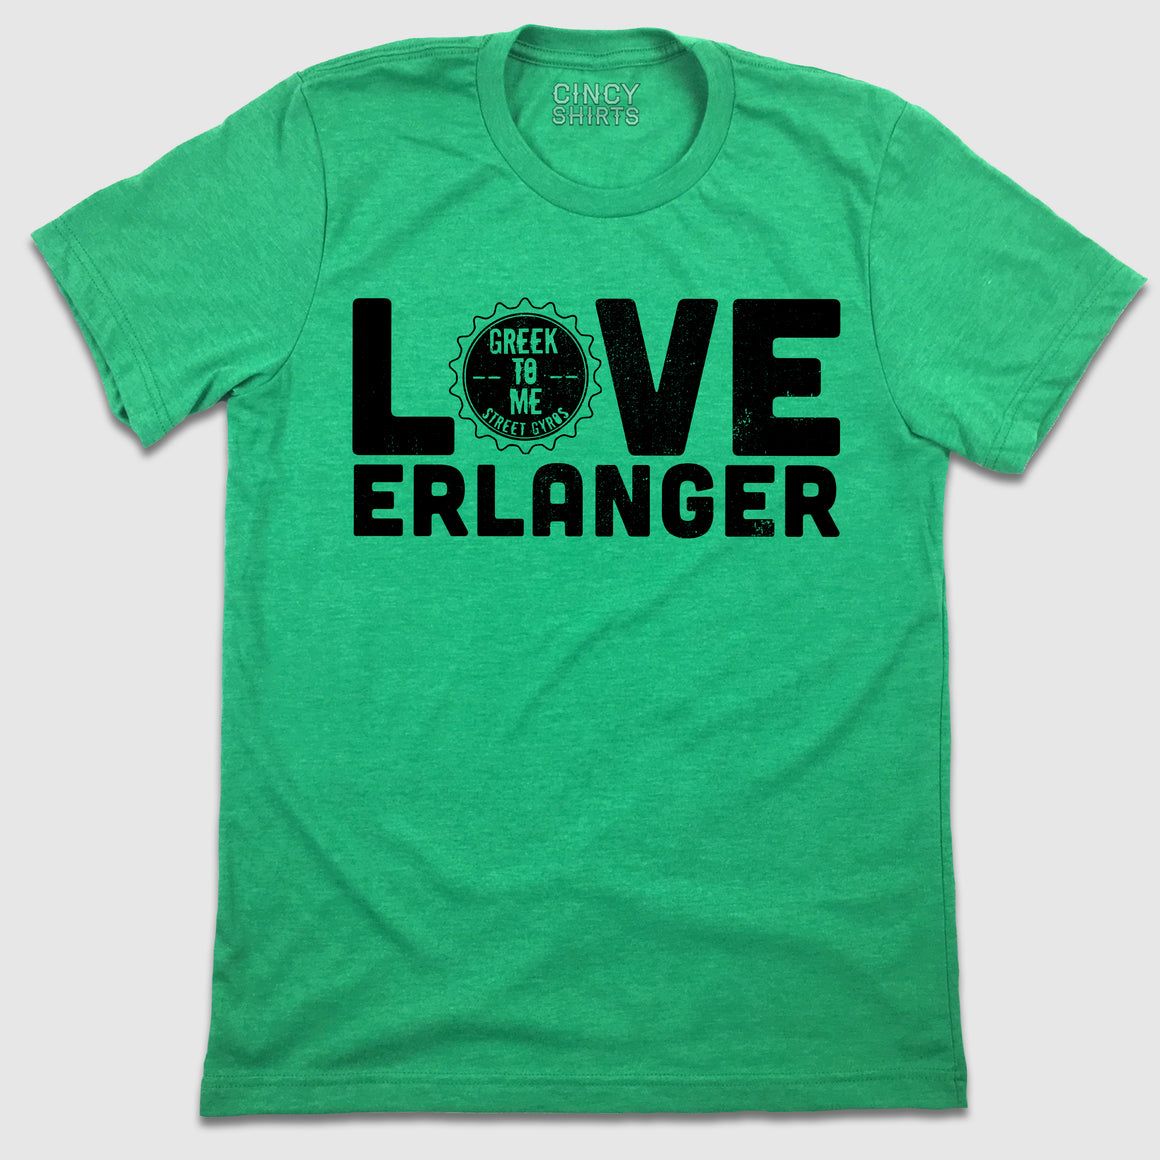 Love Erlanger - Greek To Me - Cincy Shirts